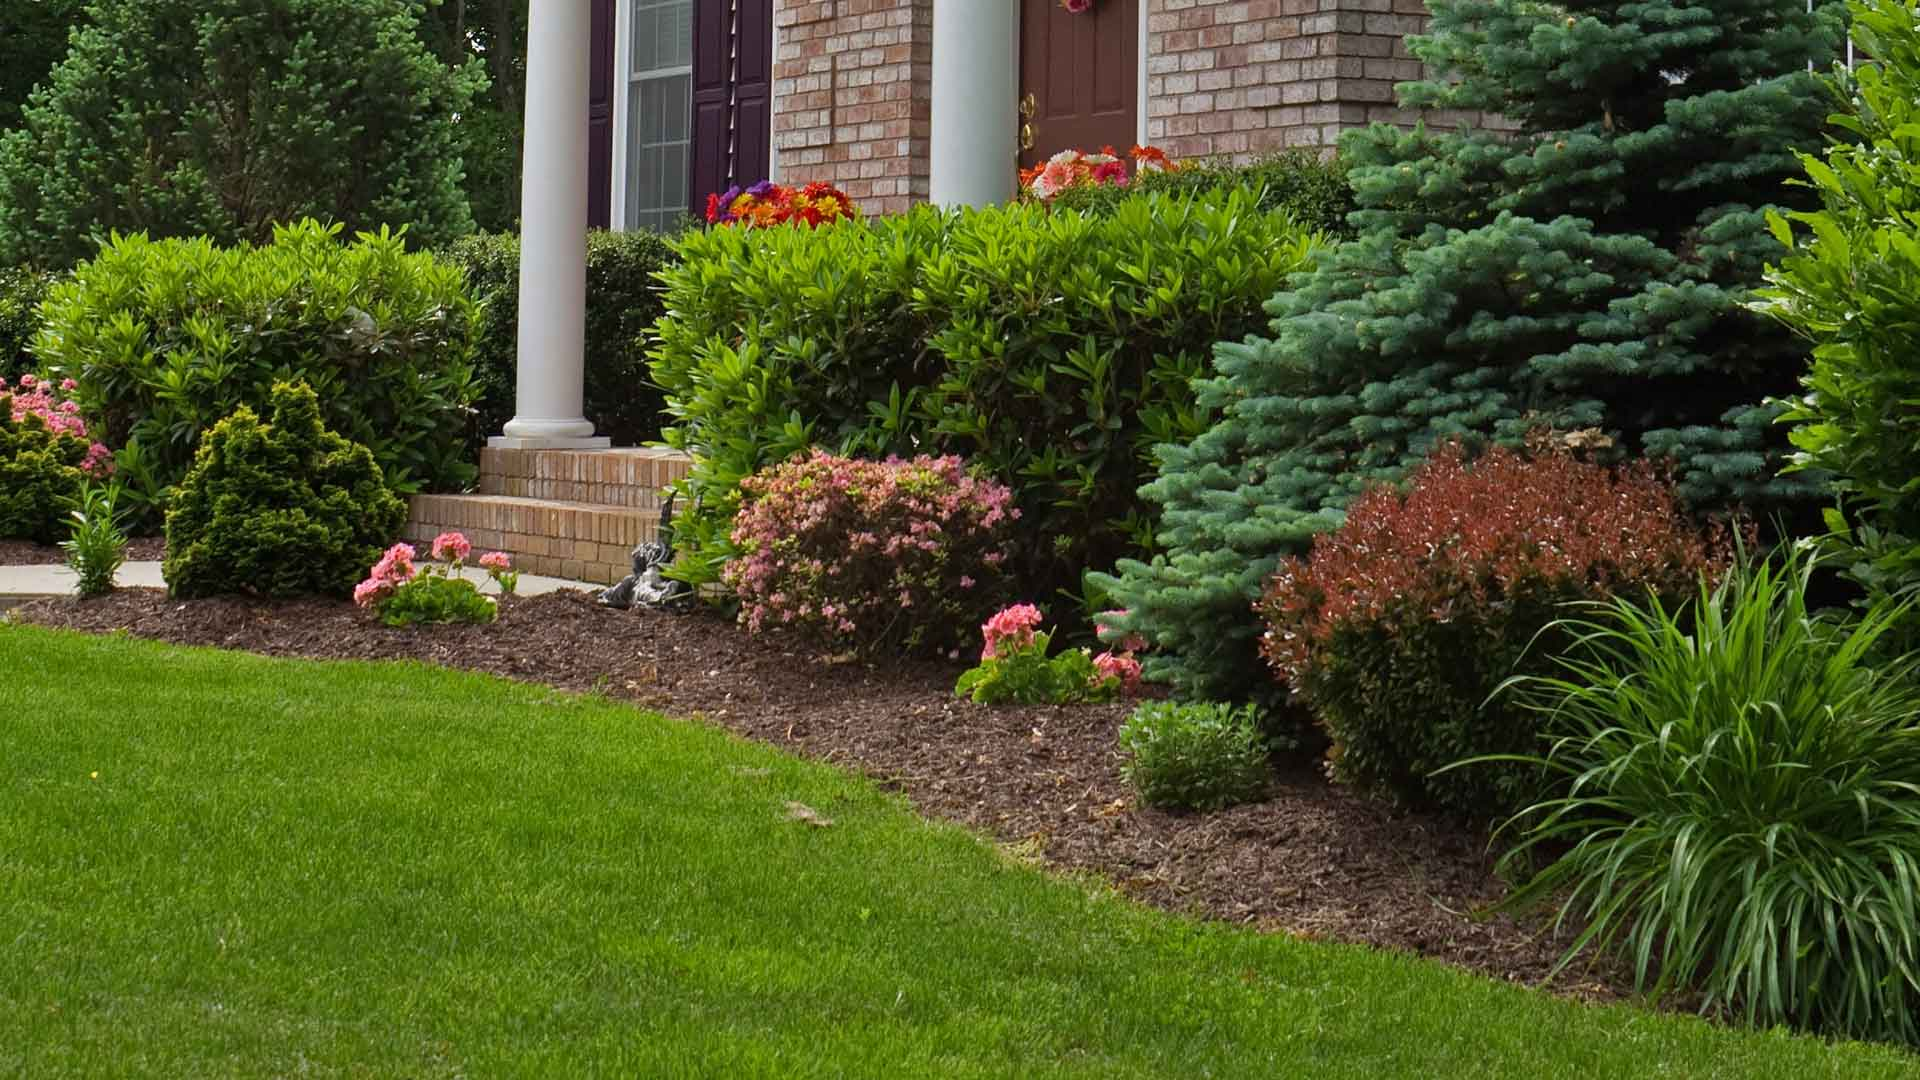 Recently mulched landscaping bed at a home in Westfield, IN.